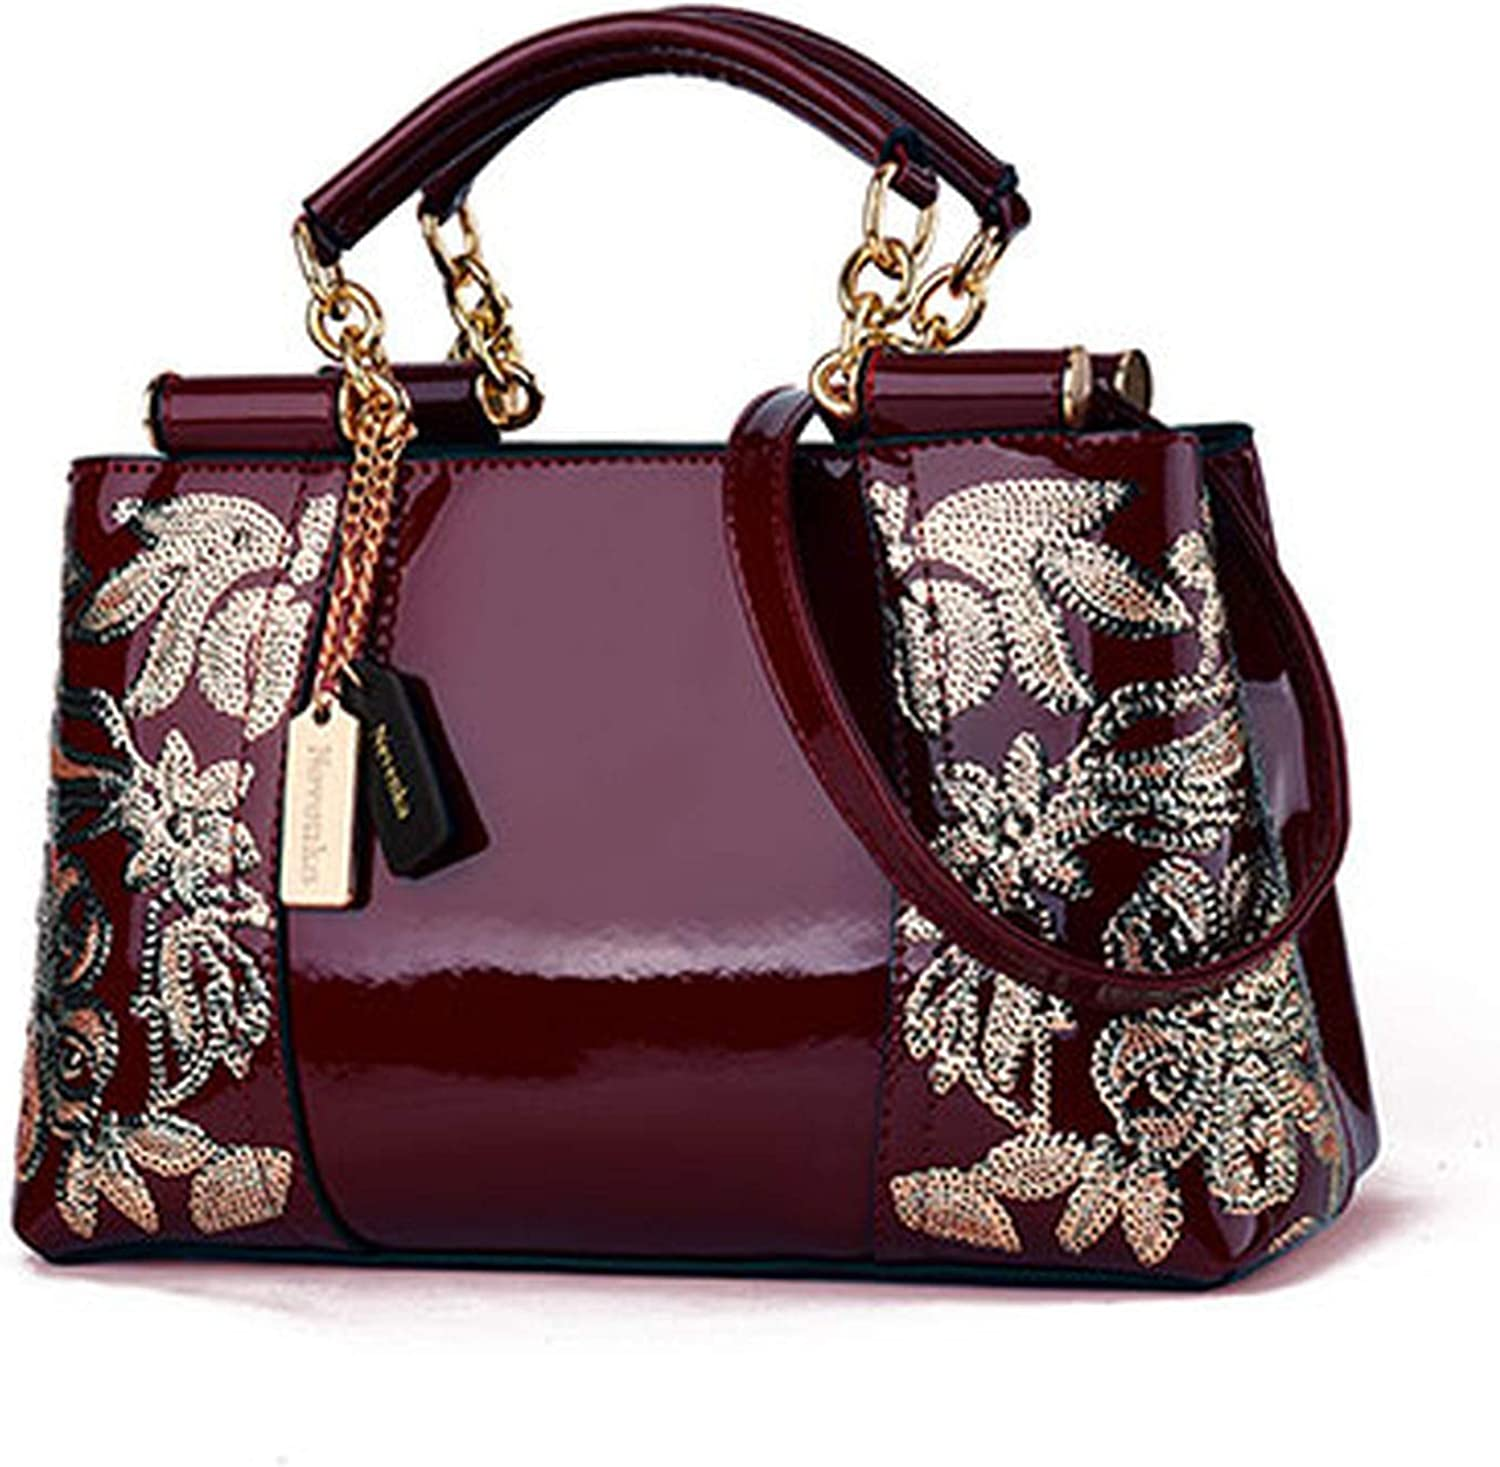 Krystal/_beautiful Embroidery Women Bag Leather Purses and Handbags Luxury Shoulder Bags Female Bags for Women 2019-in Top